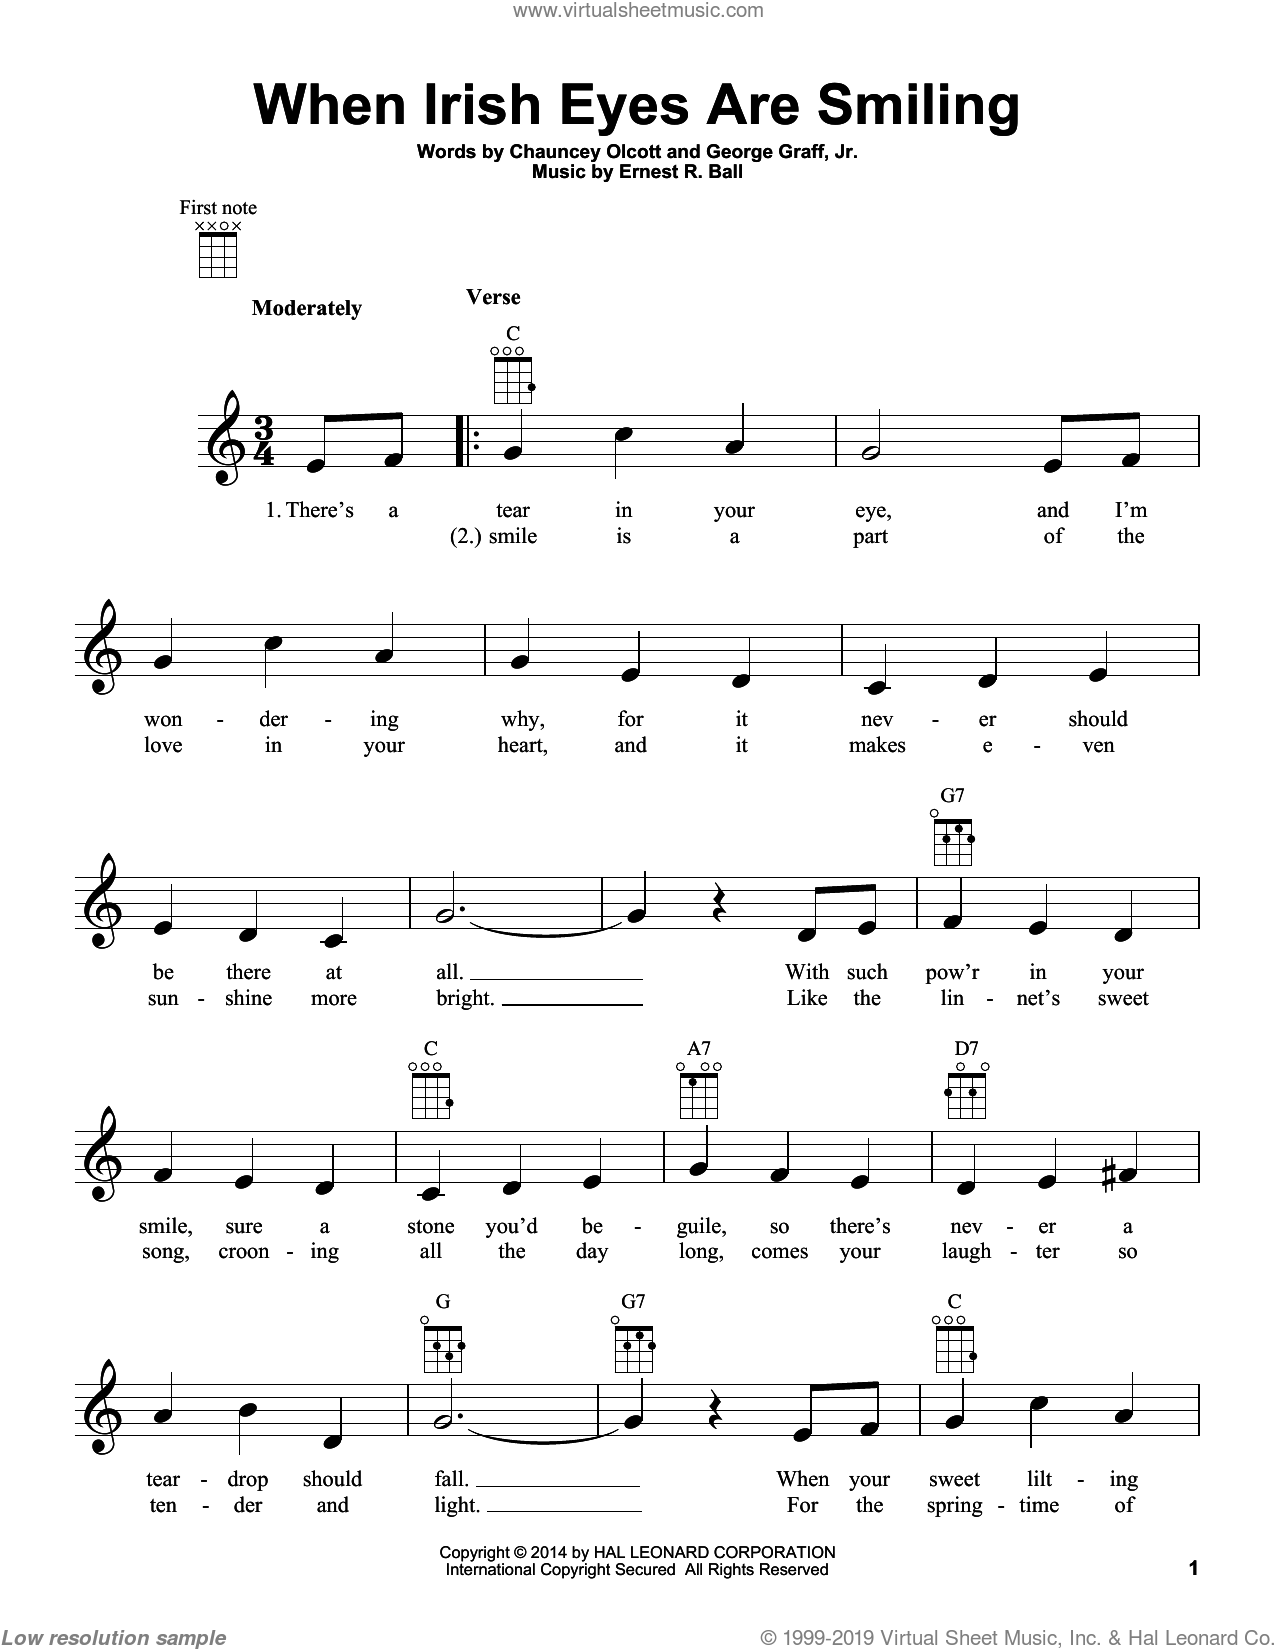 When Irish Eyes Are Smiling sheet music for ukulele by Chauncey Olcott and George Graff Jr., intermediate skill level